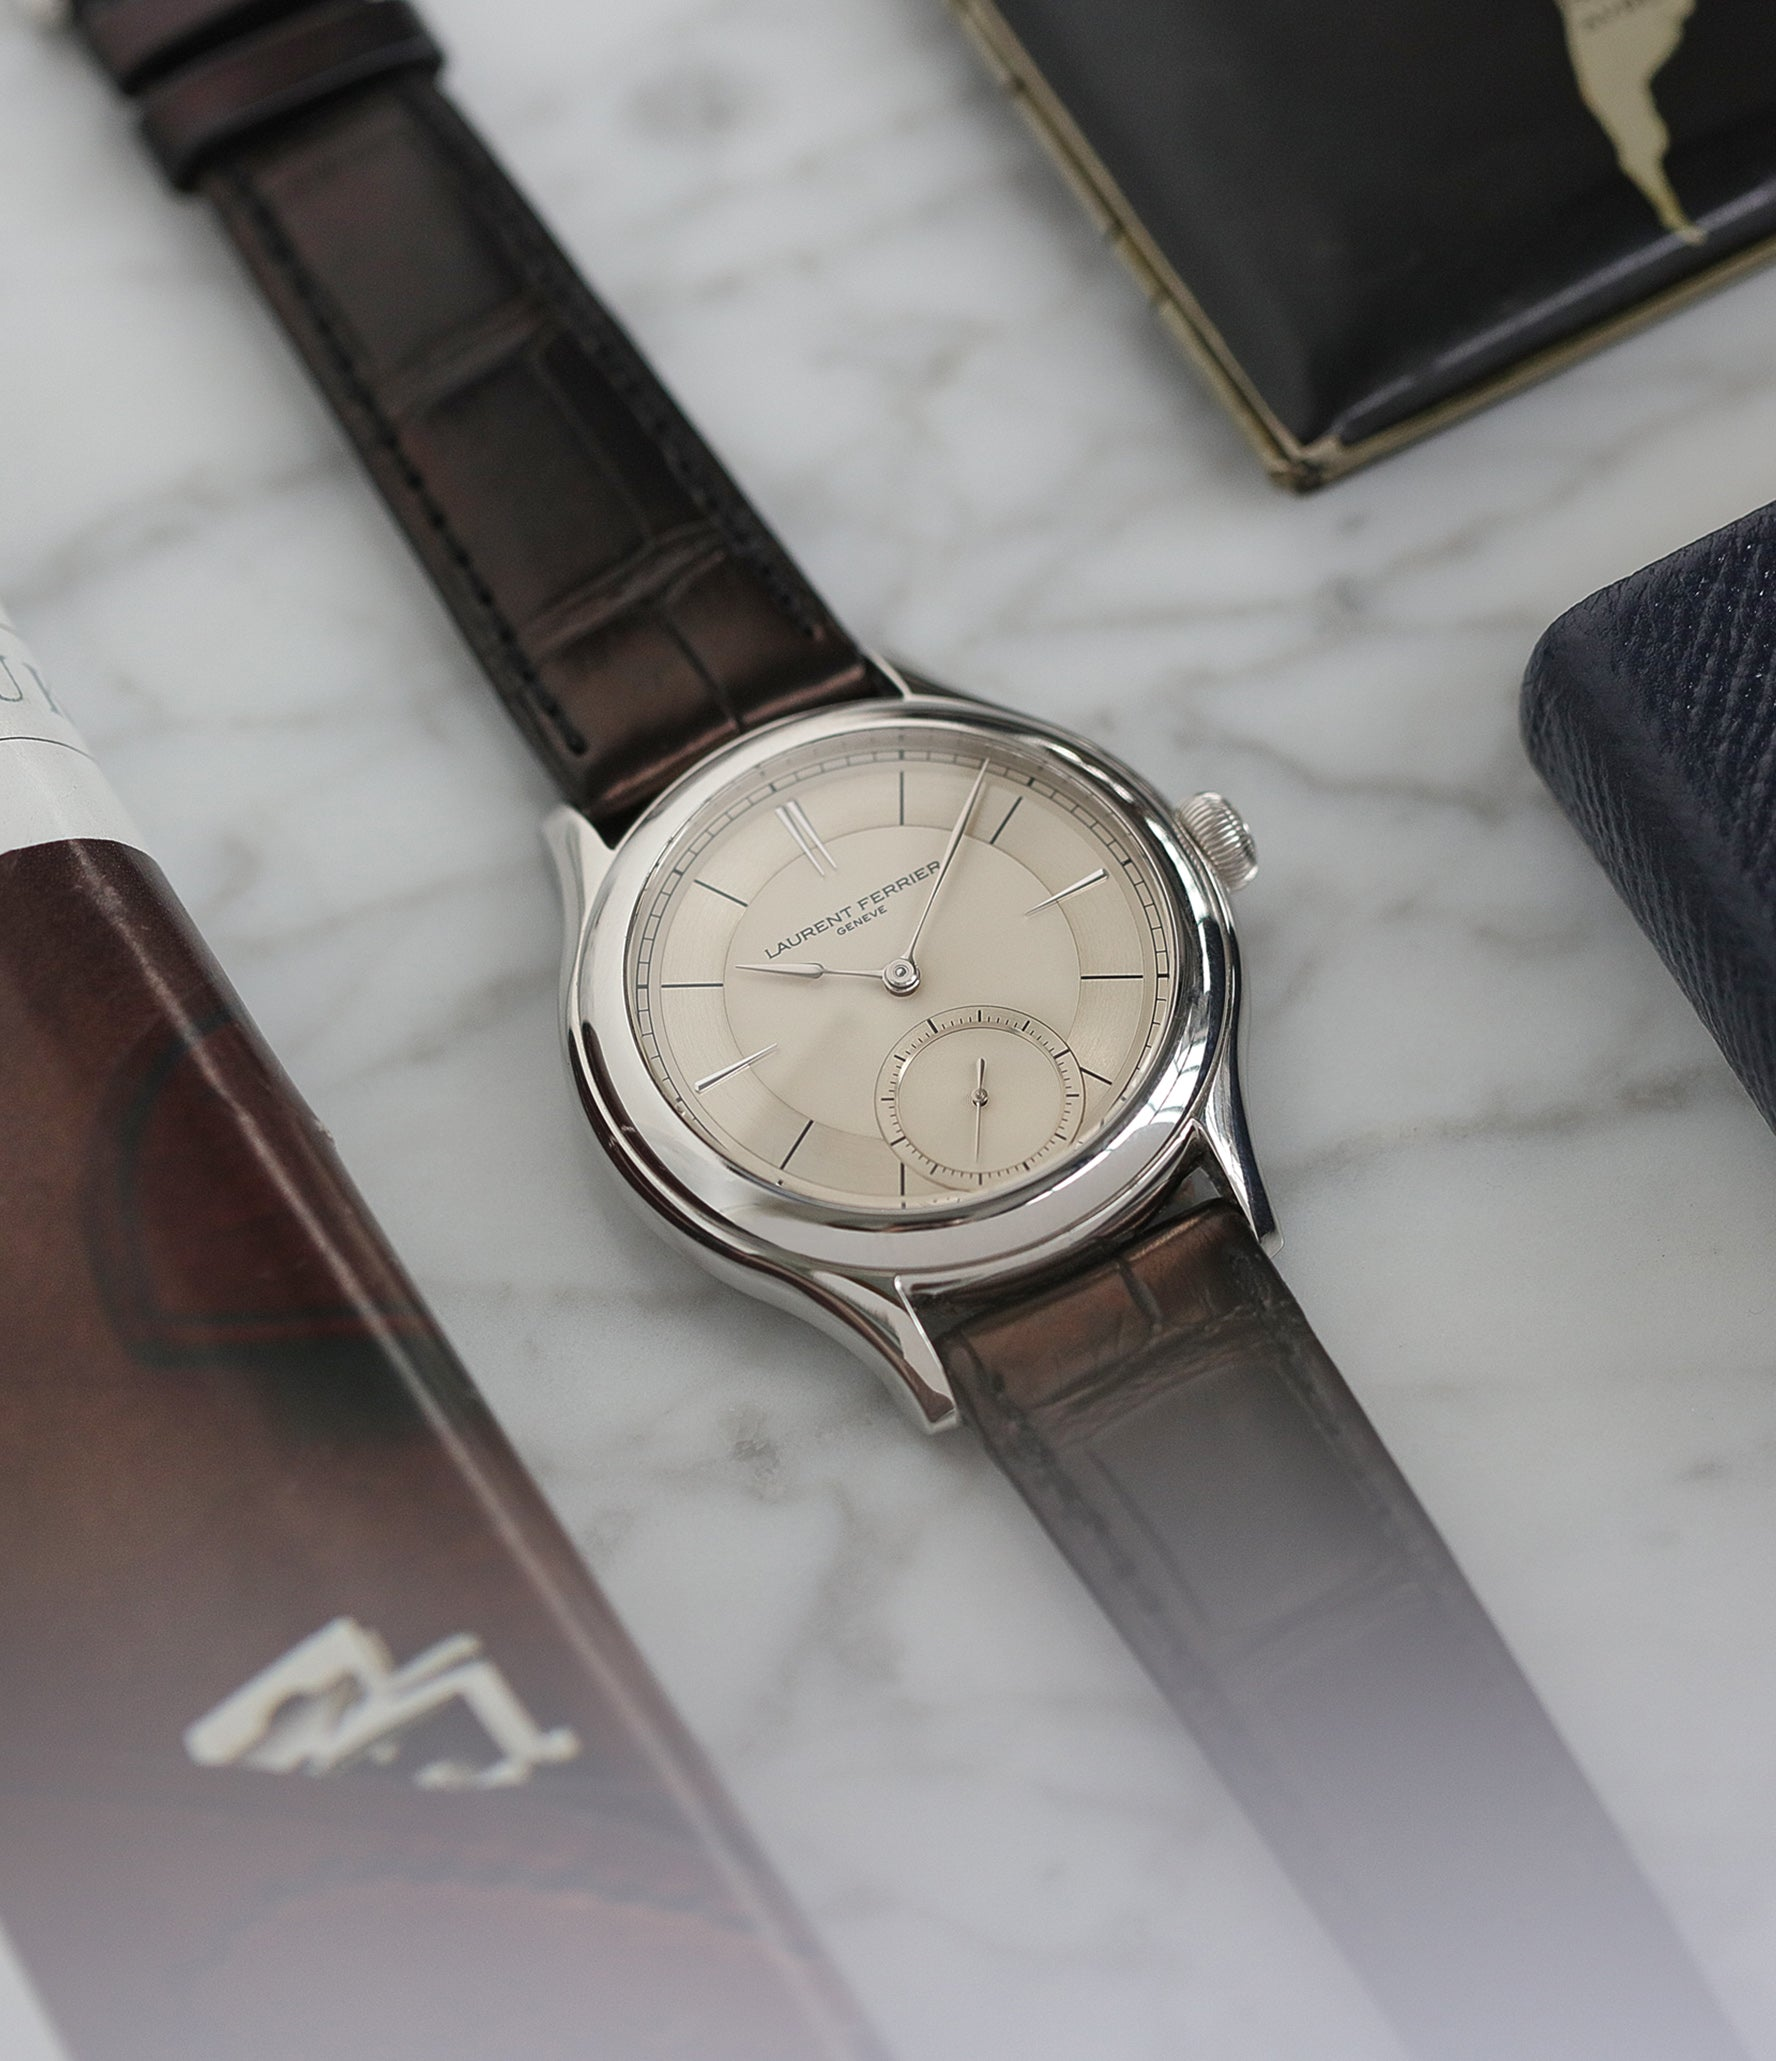 modern luxury watch Laurent Ferrier Galet Micro-rotor 40 mm platinum time-only dress watch from independent watchmaker for sale online at A Collected Man London UK specialist of rare watches